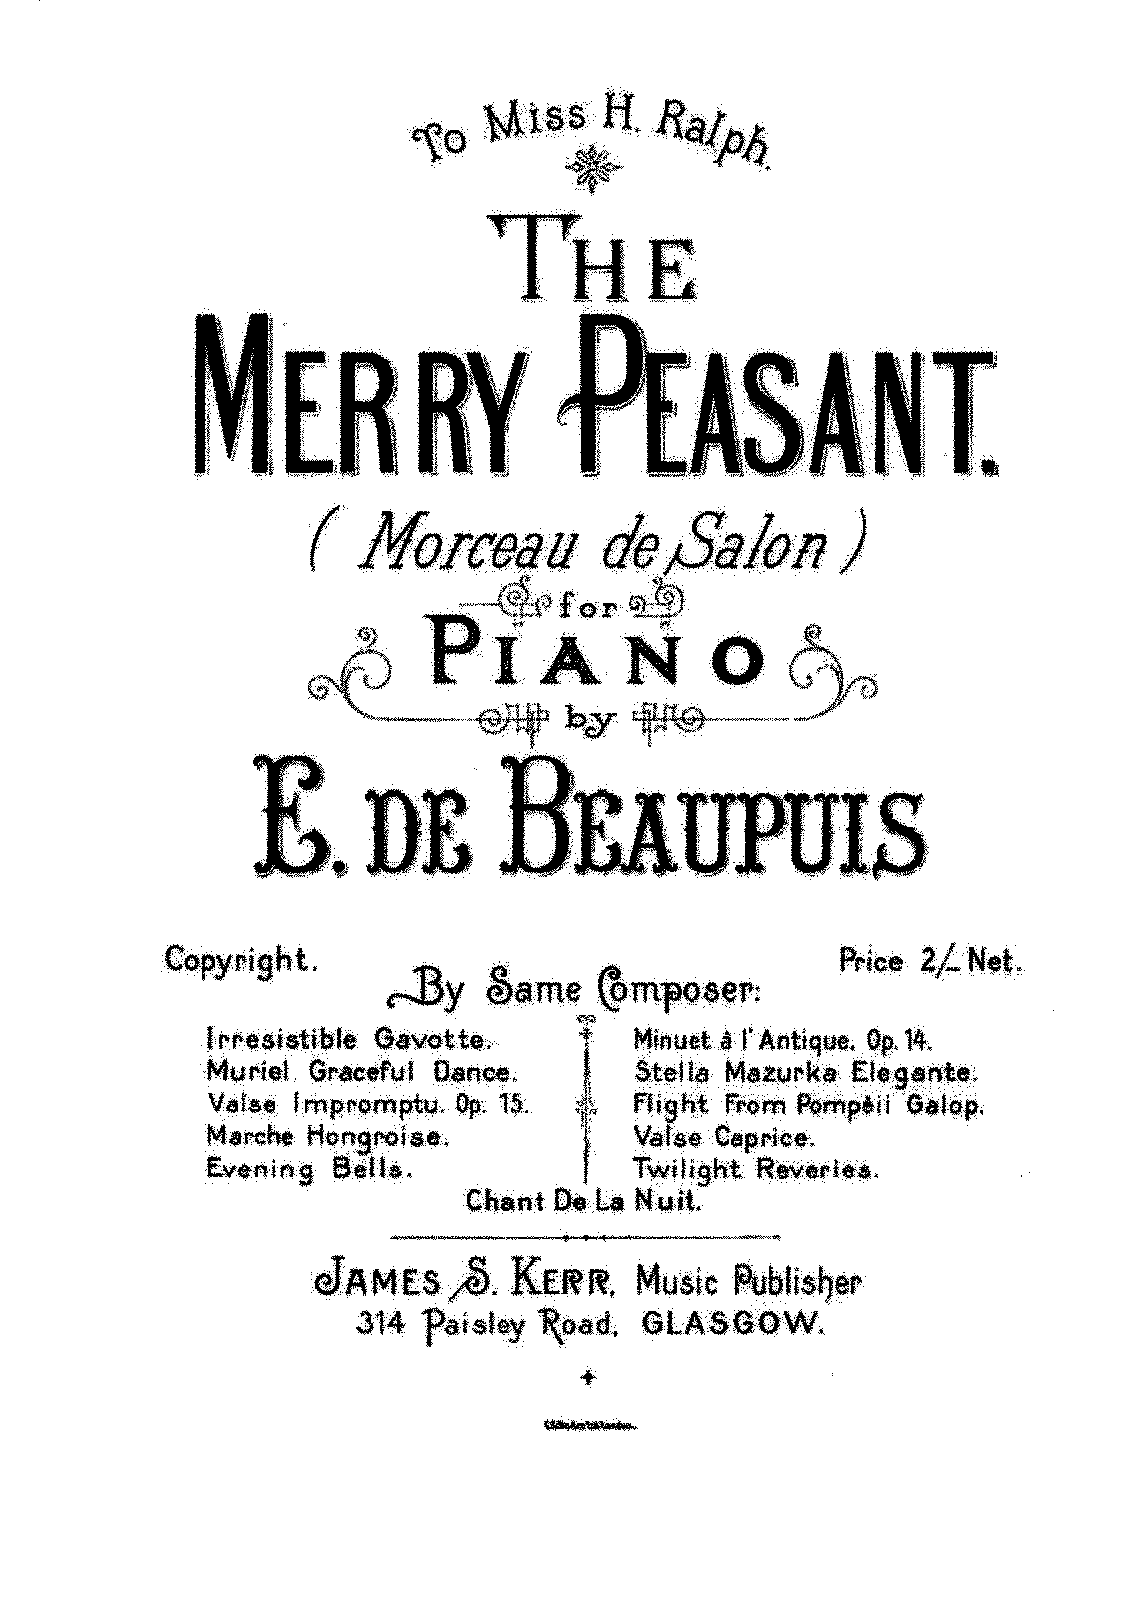 PMLP328795-Beaupuis, Emanuel de - Morceau de Salon - The Merry Peasant.pdf